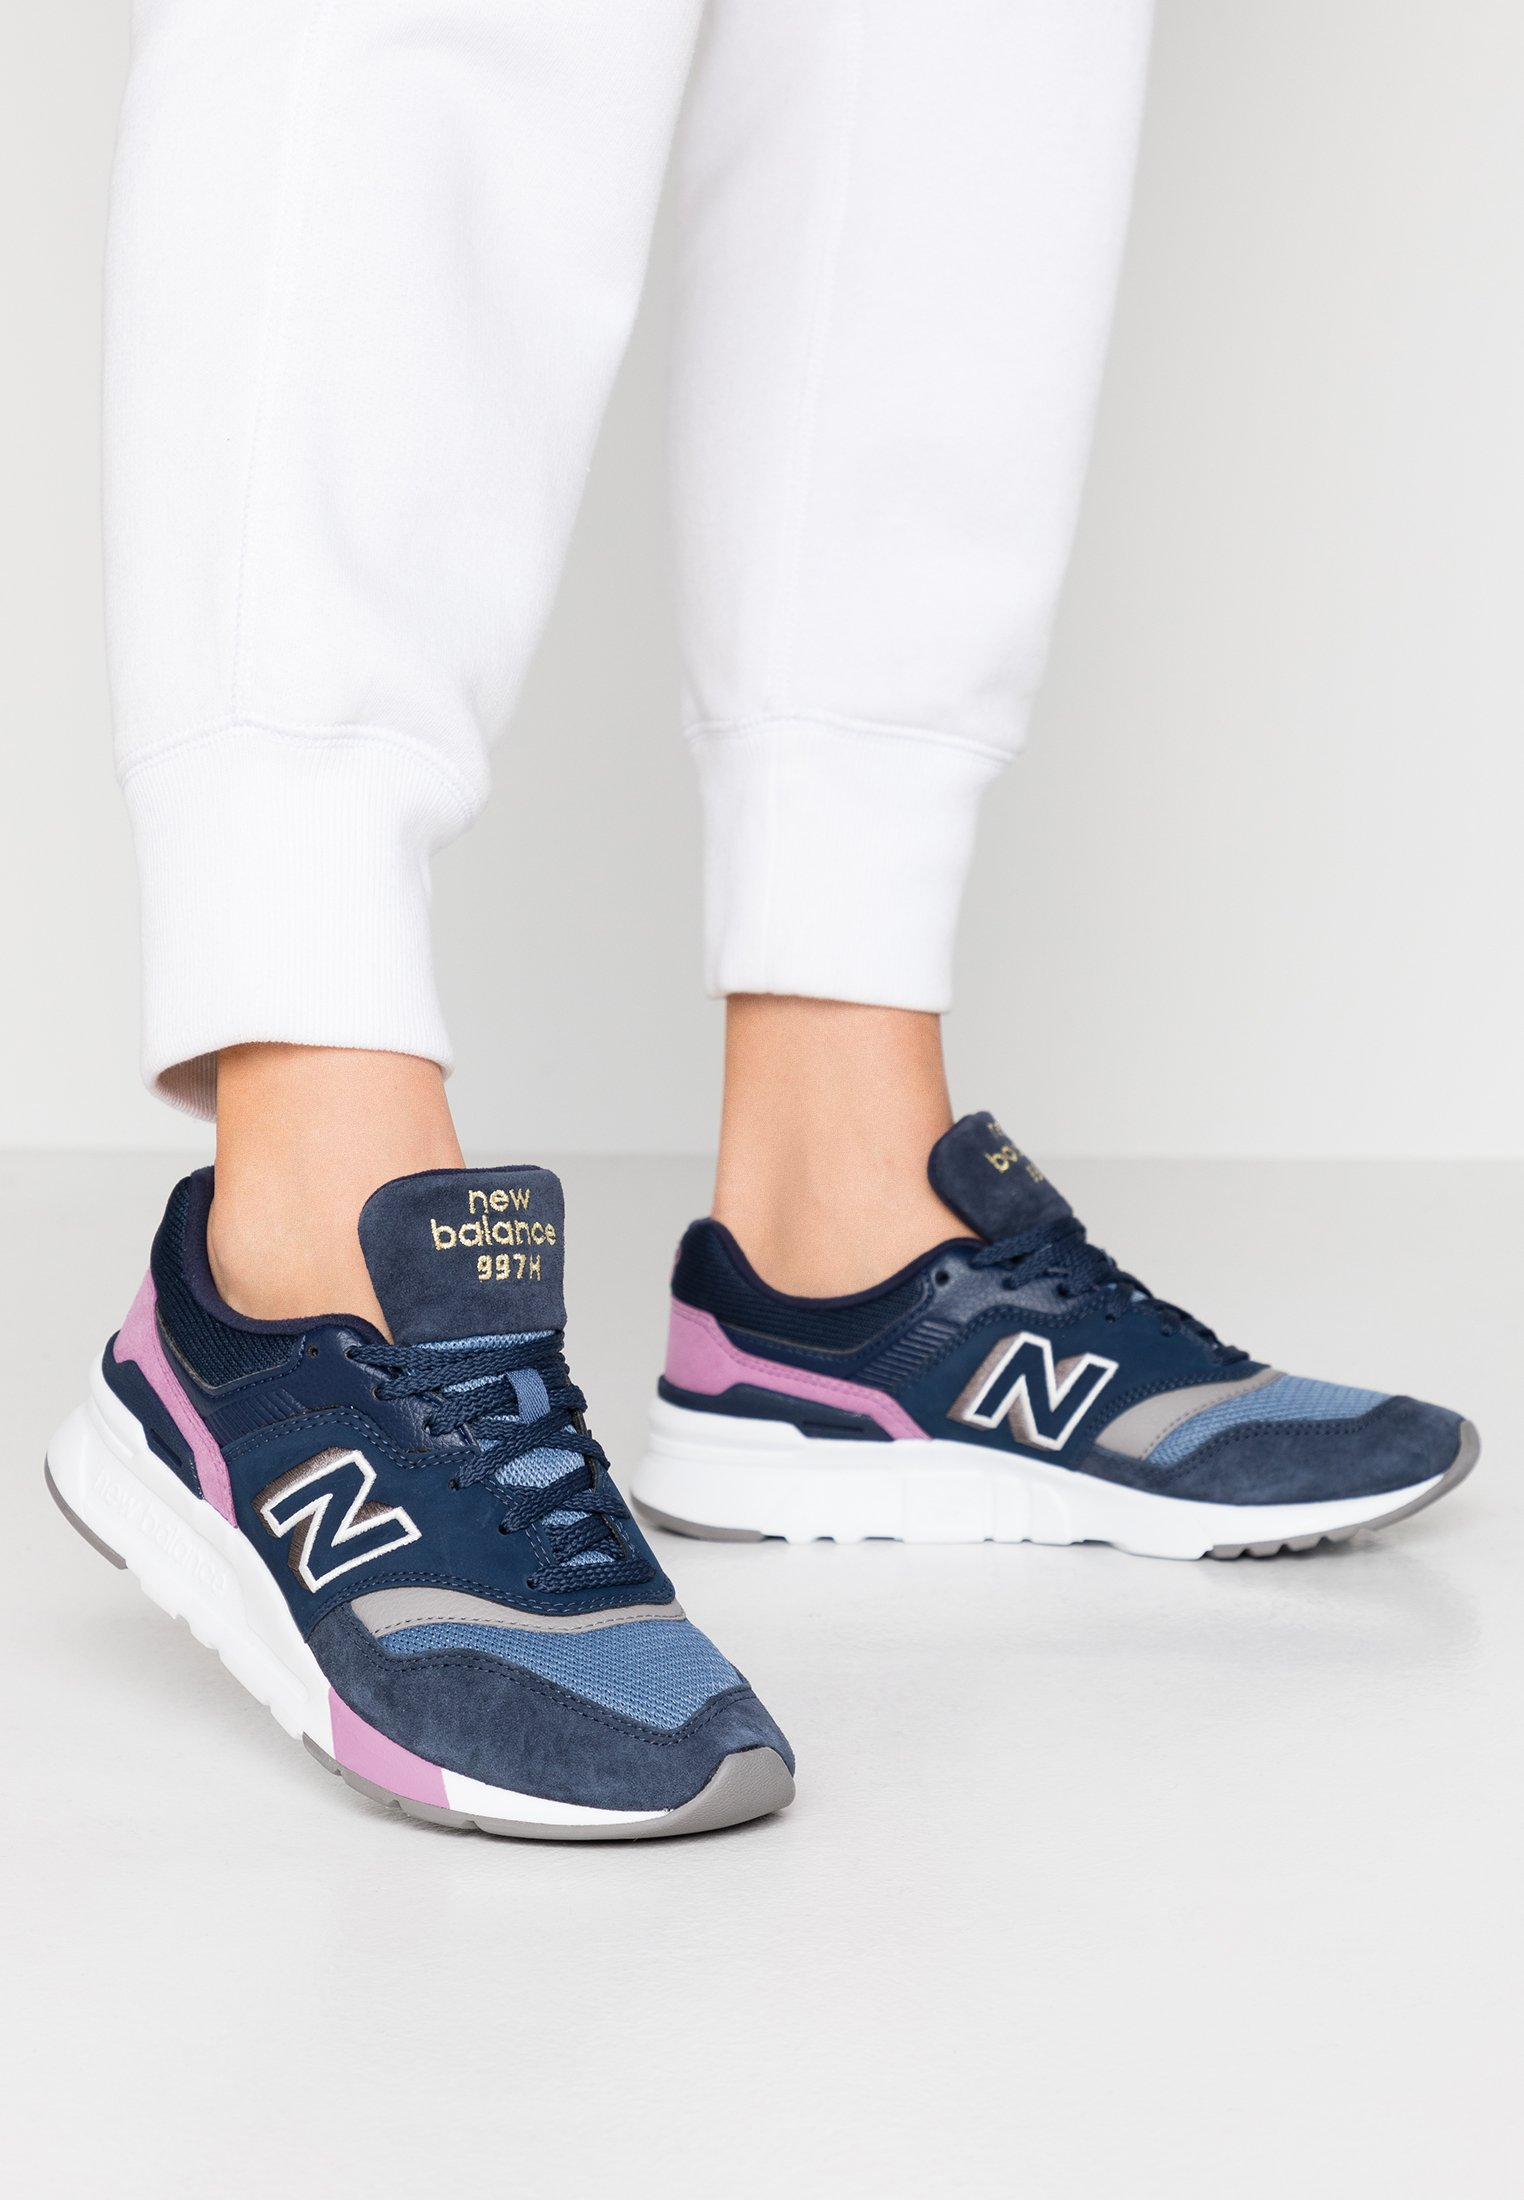 new balance cw997 Shop Clothing & Shoes Online